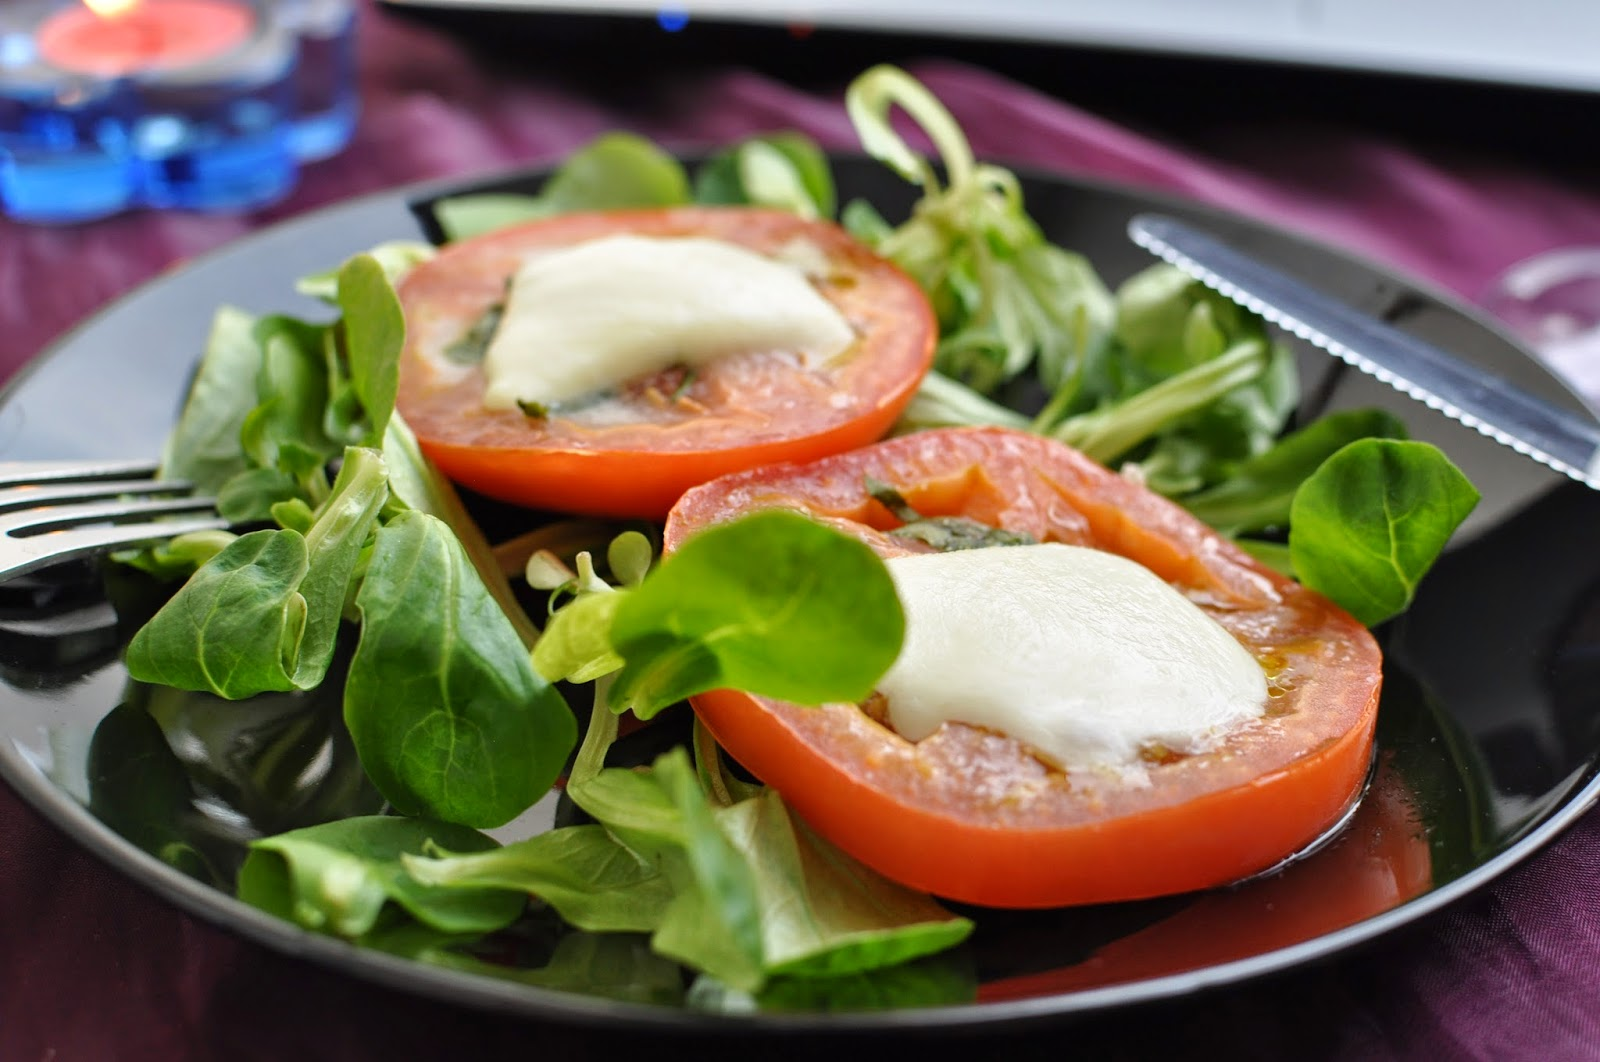 bruschetta tomato slices on a bed of salad